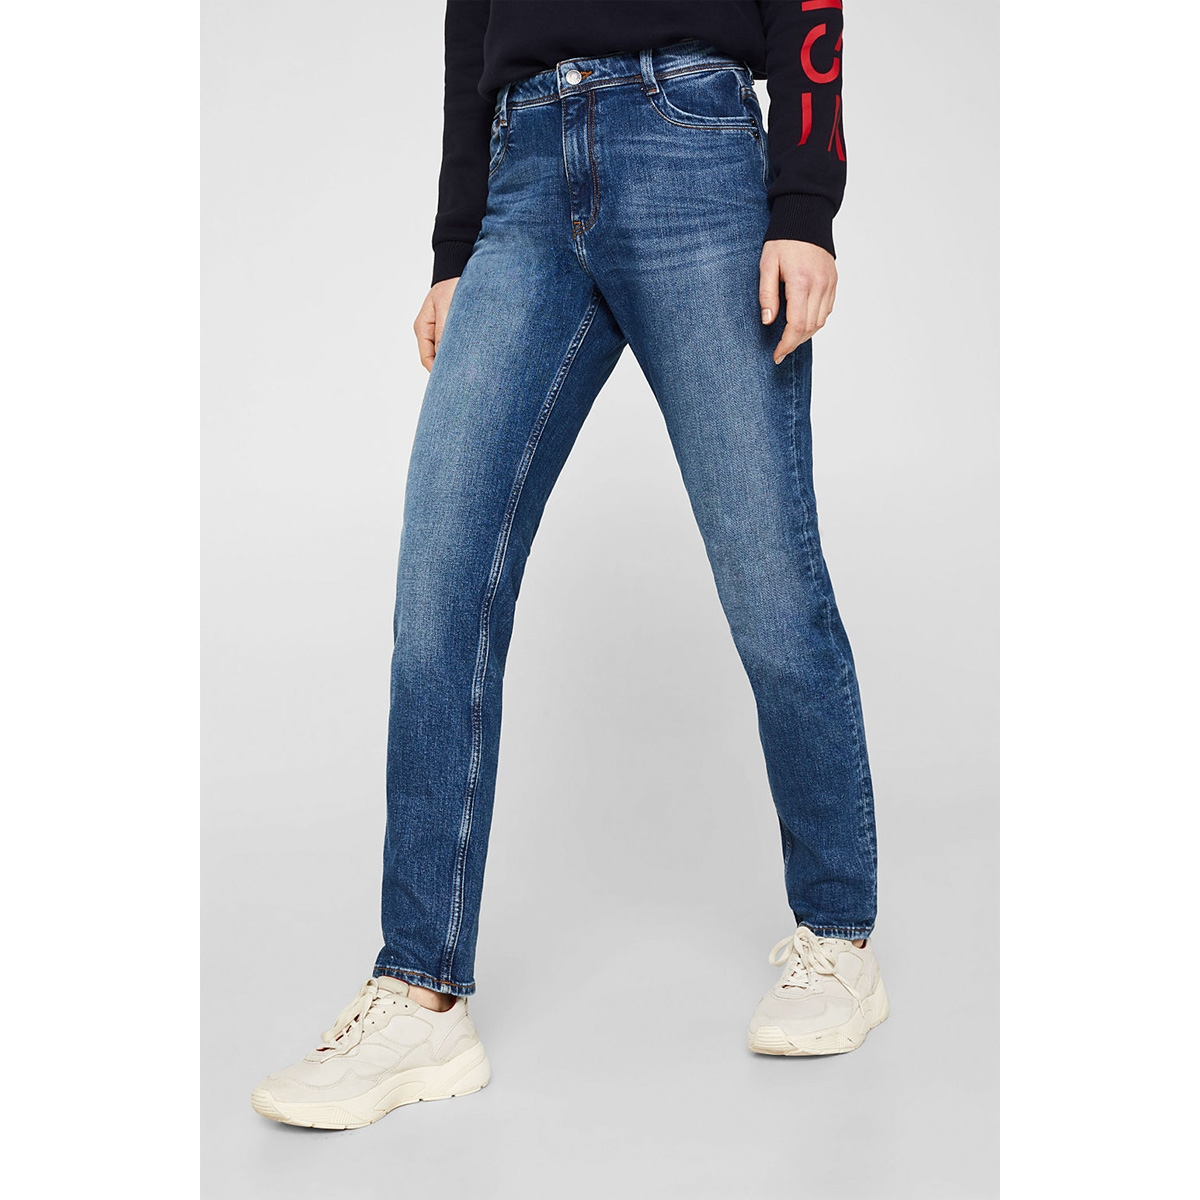 stretchjeans in girlfriend fit 010ee1b307 esprit jeans e902